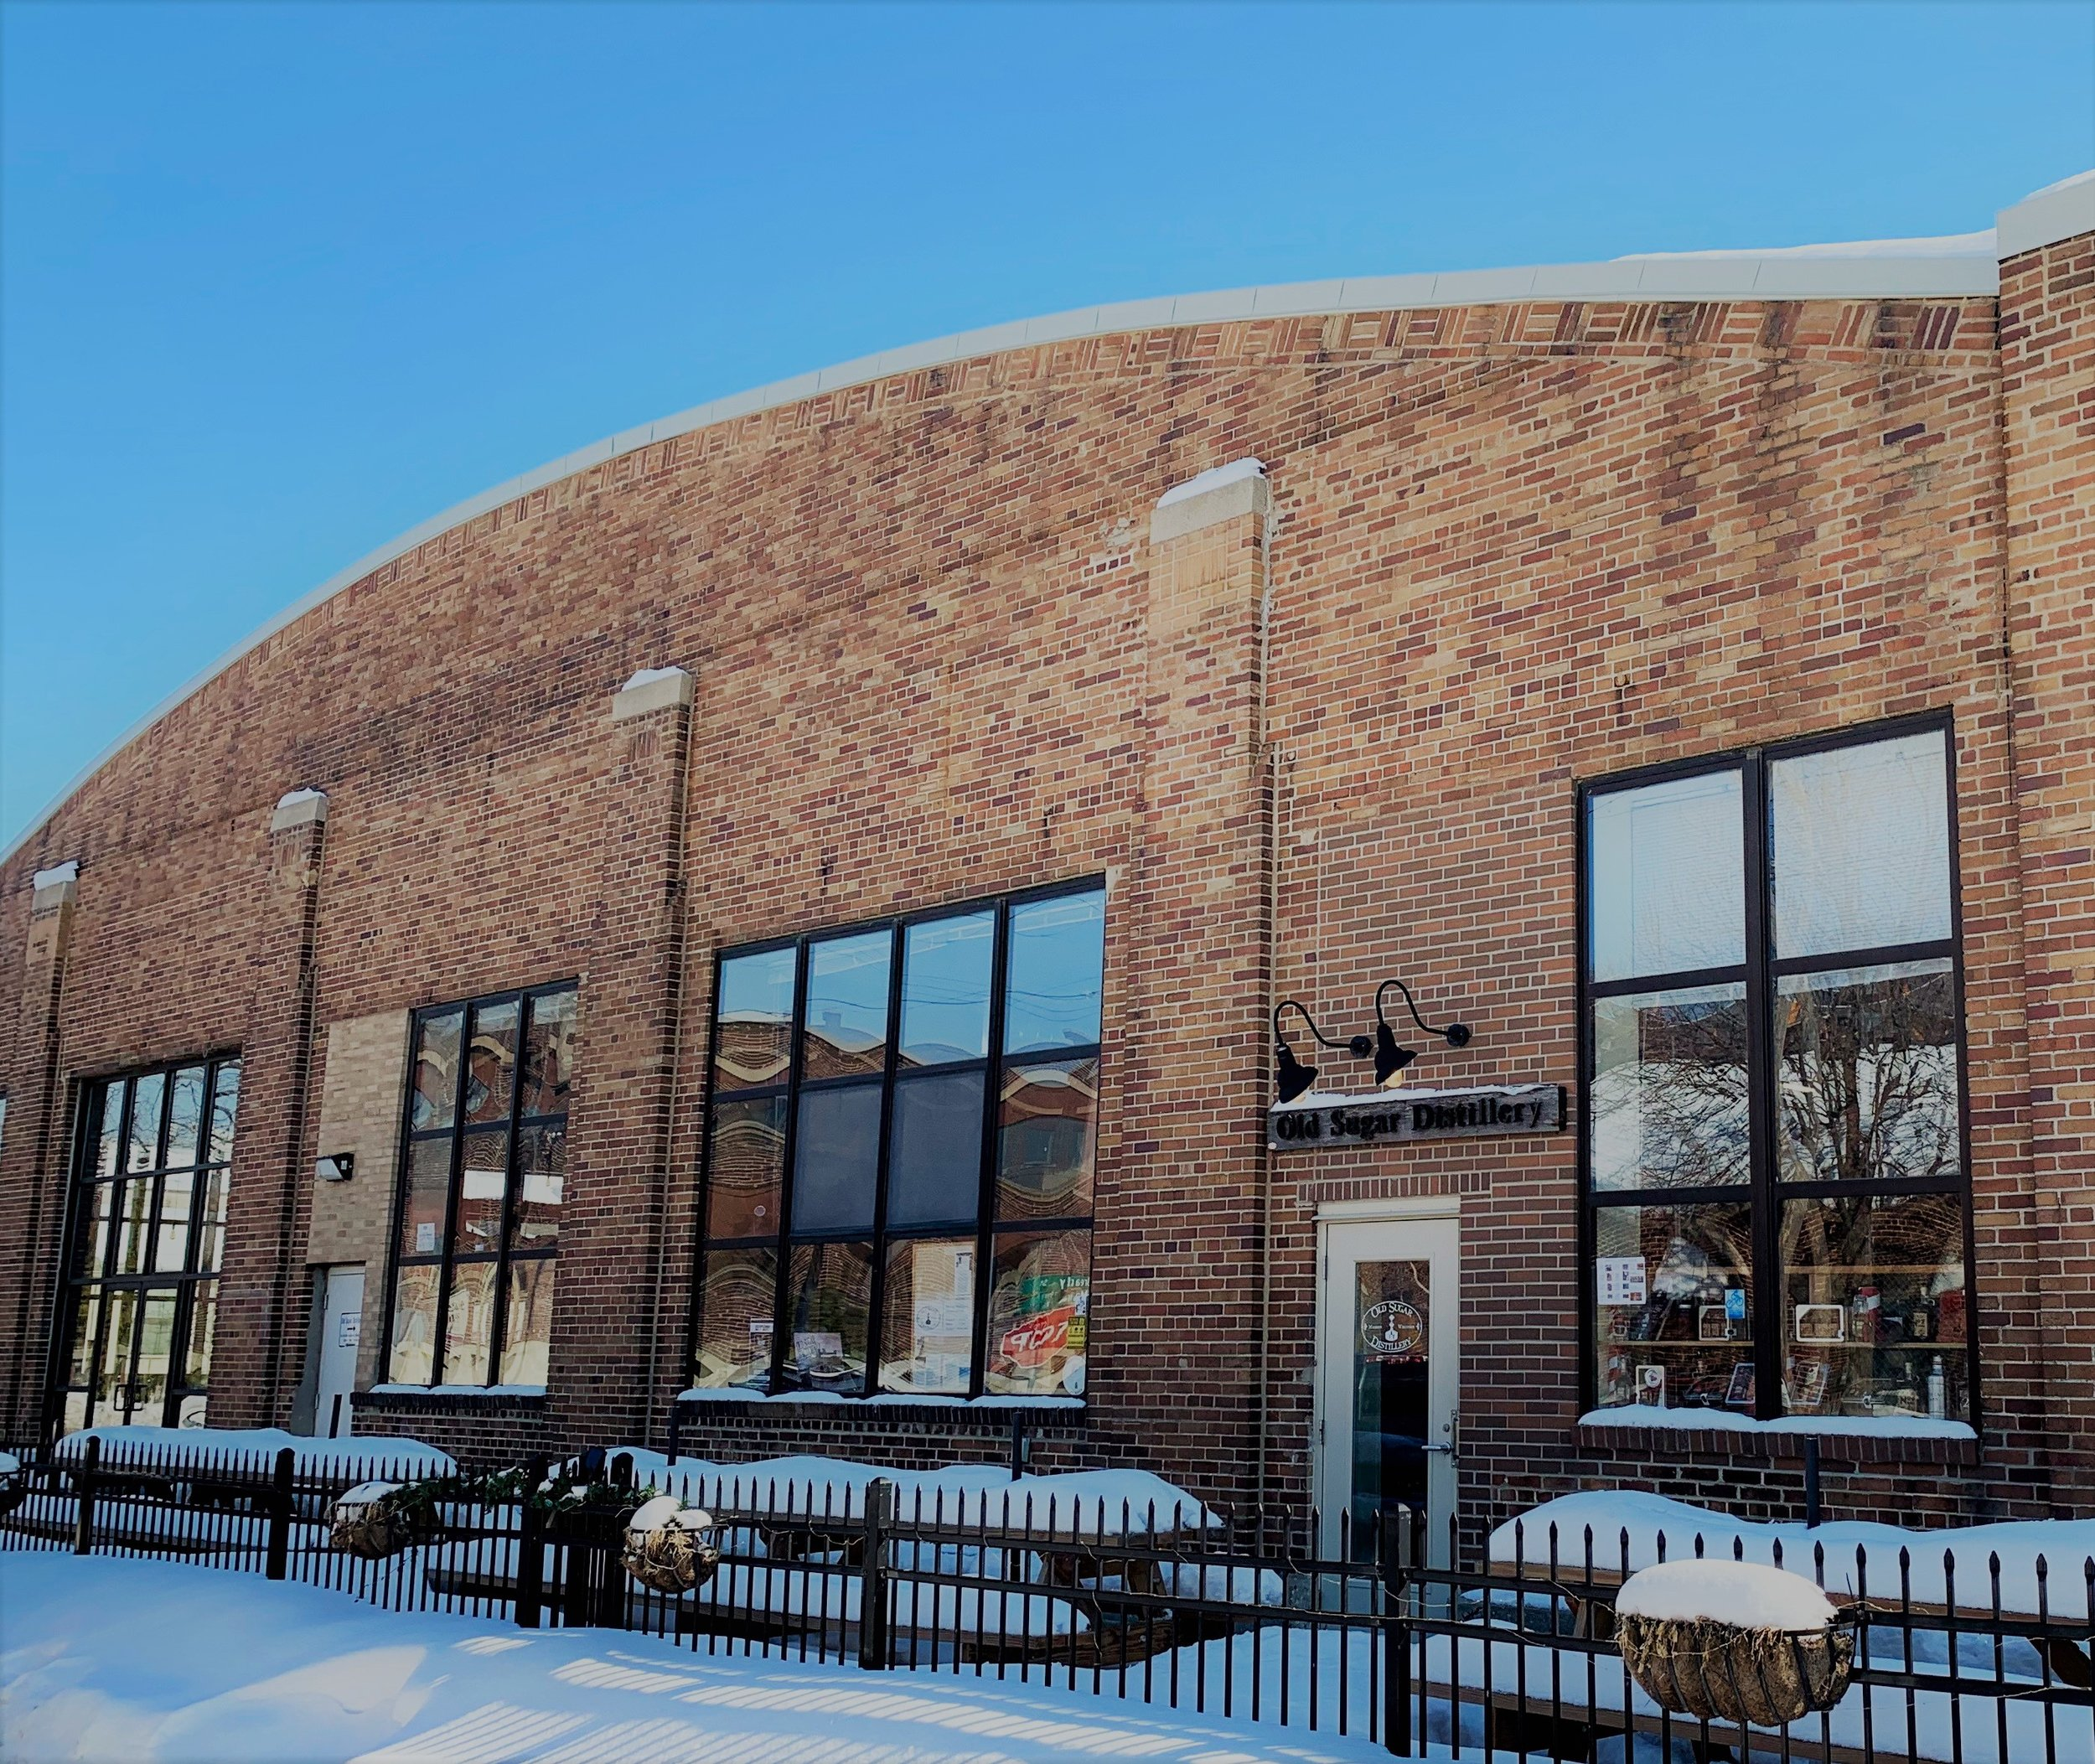 2019 Awards Venue - The name Old Sugar Distillery stems from both Madison's history of beet-sugar production and from the use of sugar as a base for many of the spirits crafted in-house. The distillery and tasting room, founded in 2010 by Nathan Greenawalt, is housed at 931 E. Main in the brown-brick, arched-roof building that for decades served the Madison community as a transportation hub.